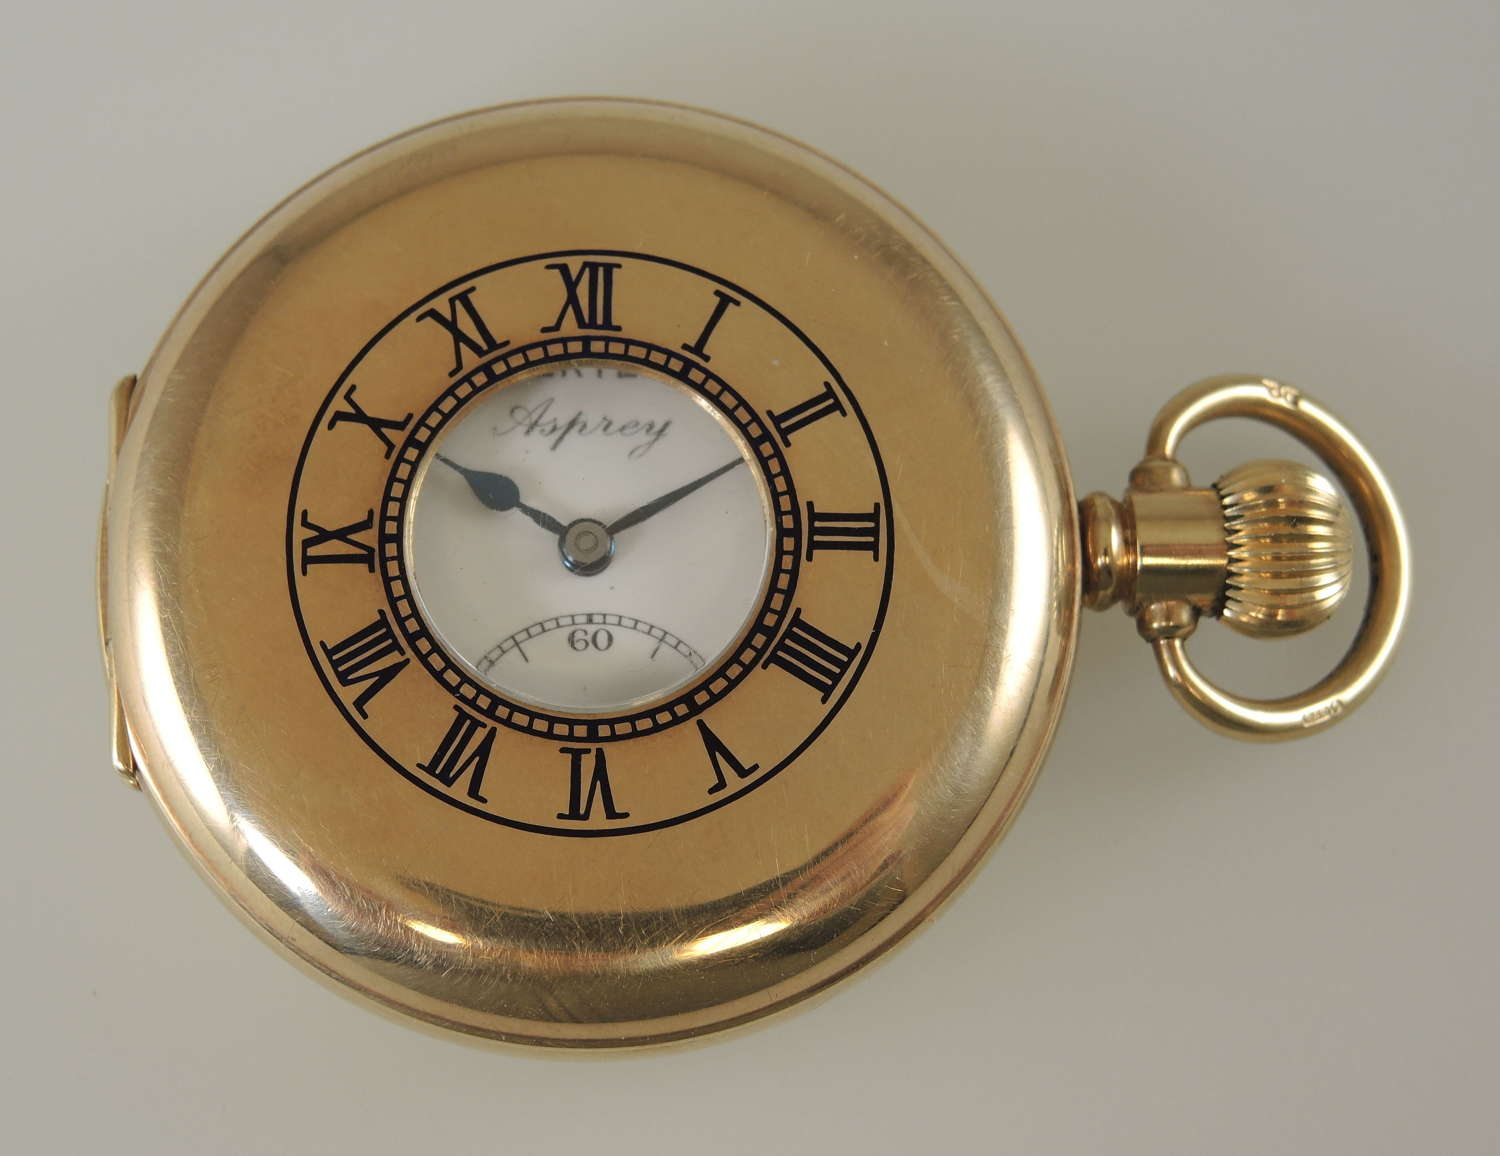 Solid 9K Gold Half Hunter retailed by Asprey 1956